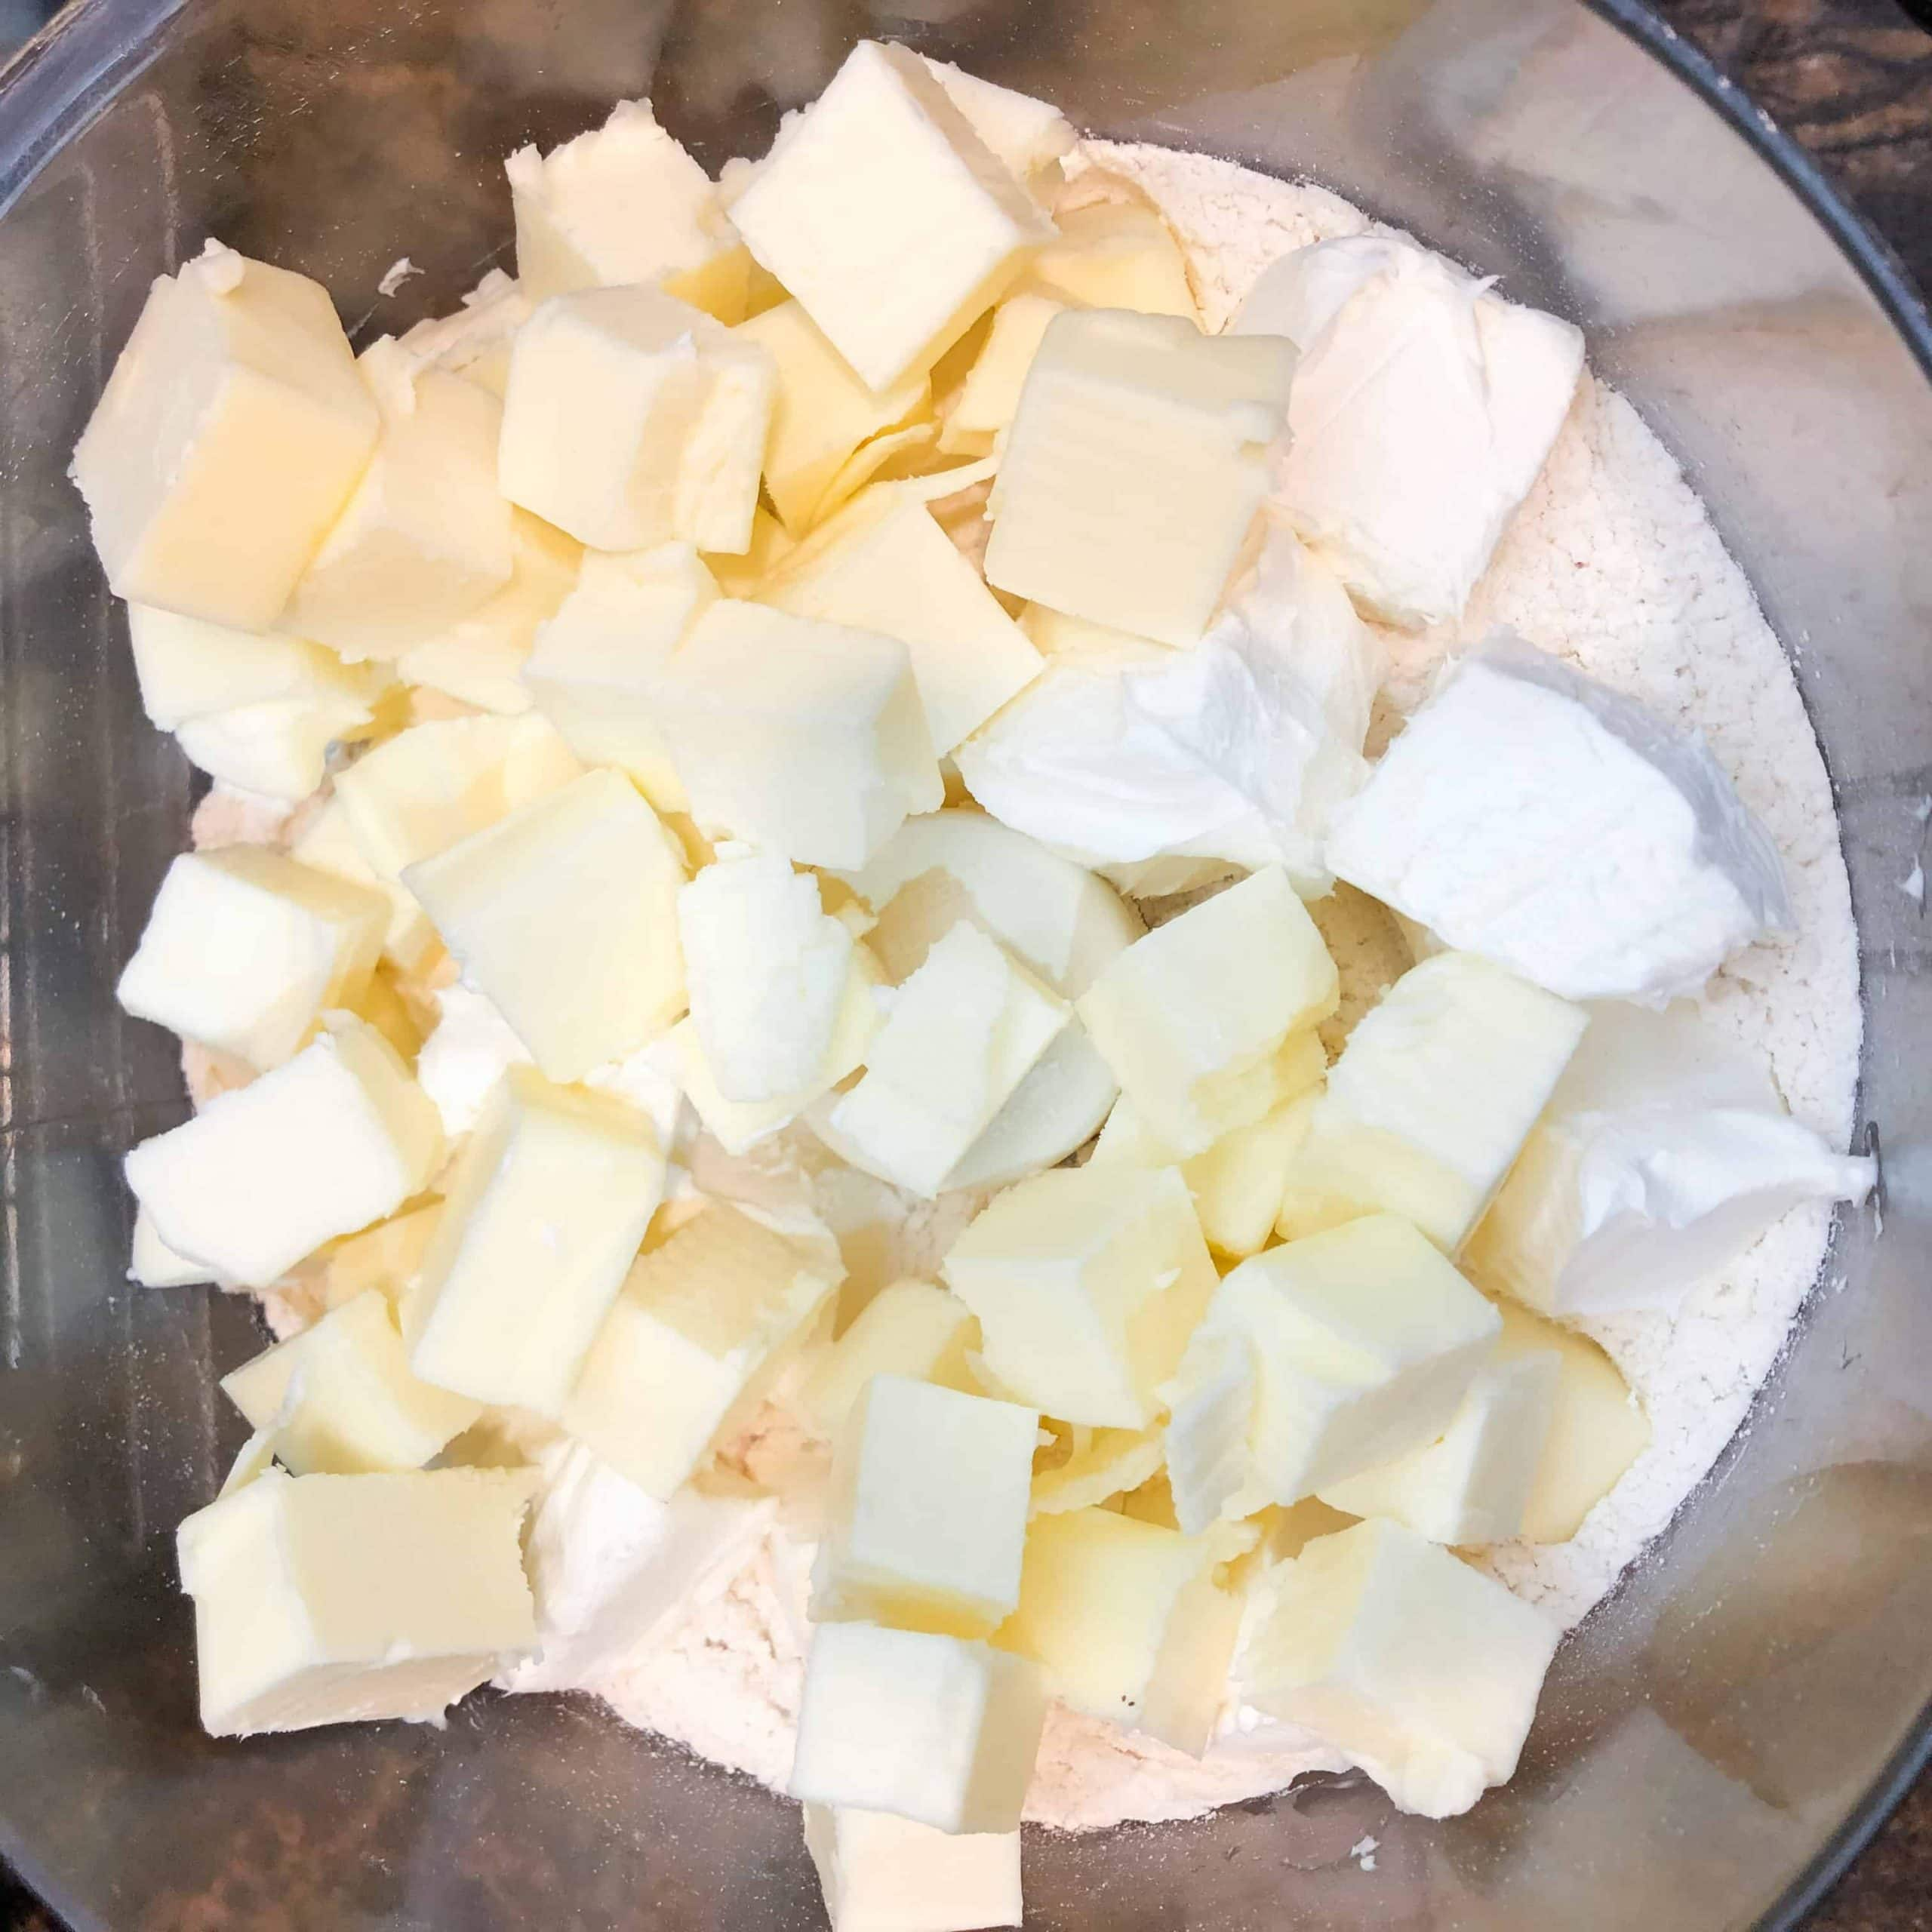 Cubed butter and cream cheese that has been added to a food processor with flour and salt to make a rugelach dough.